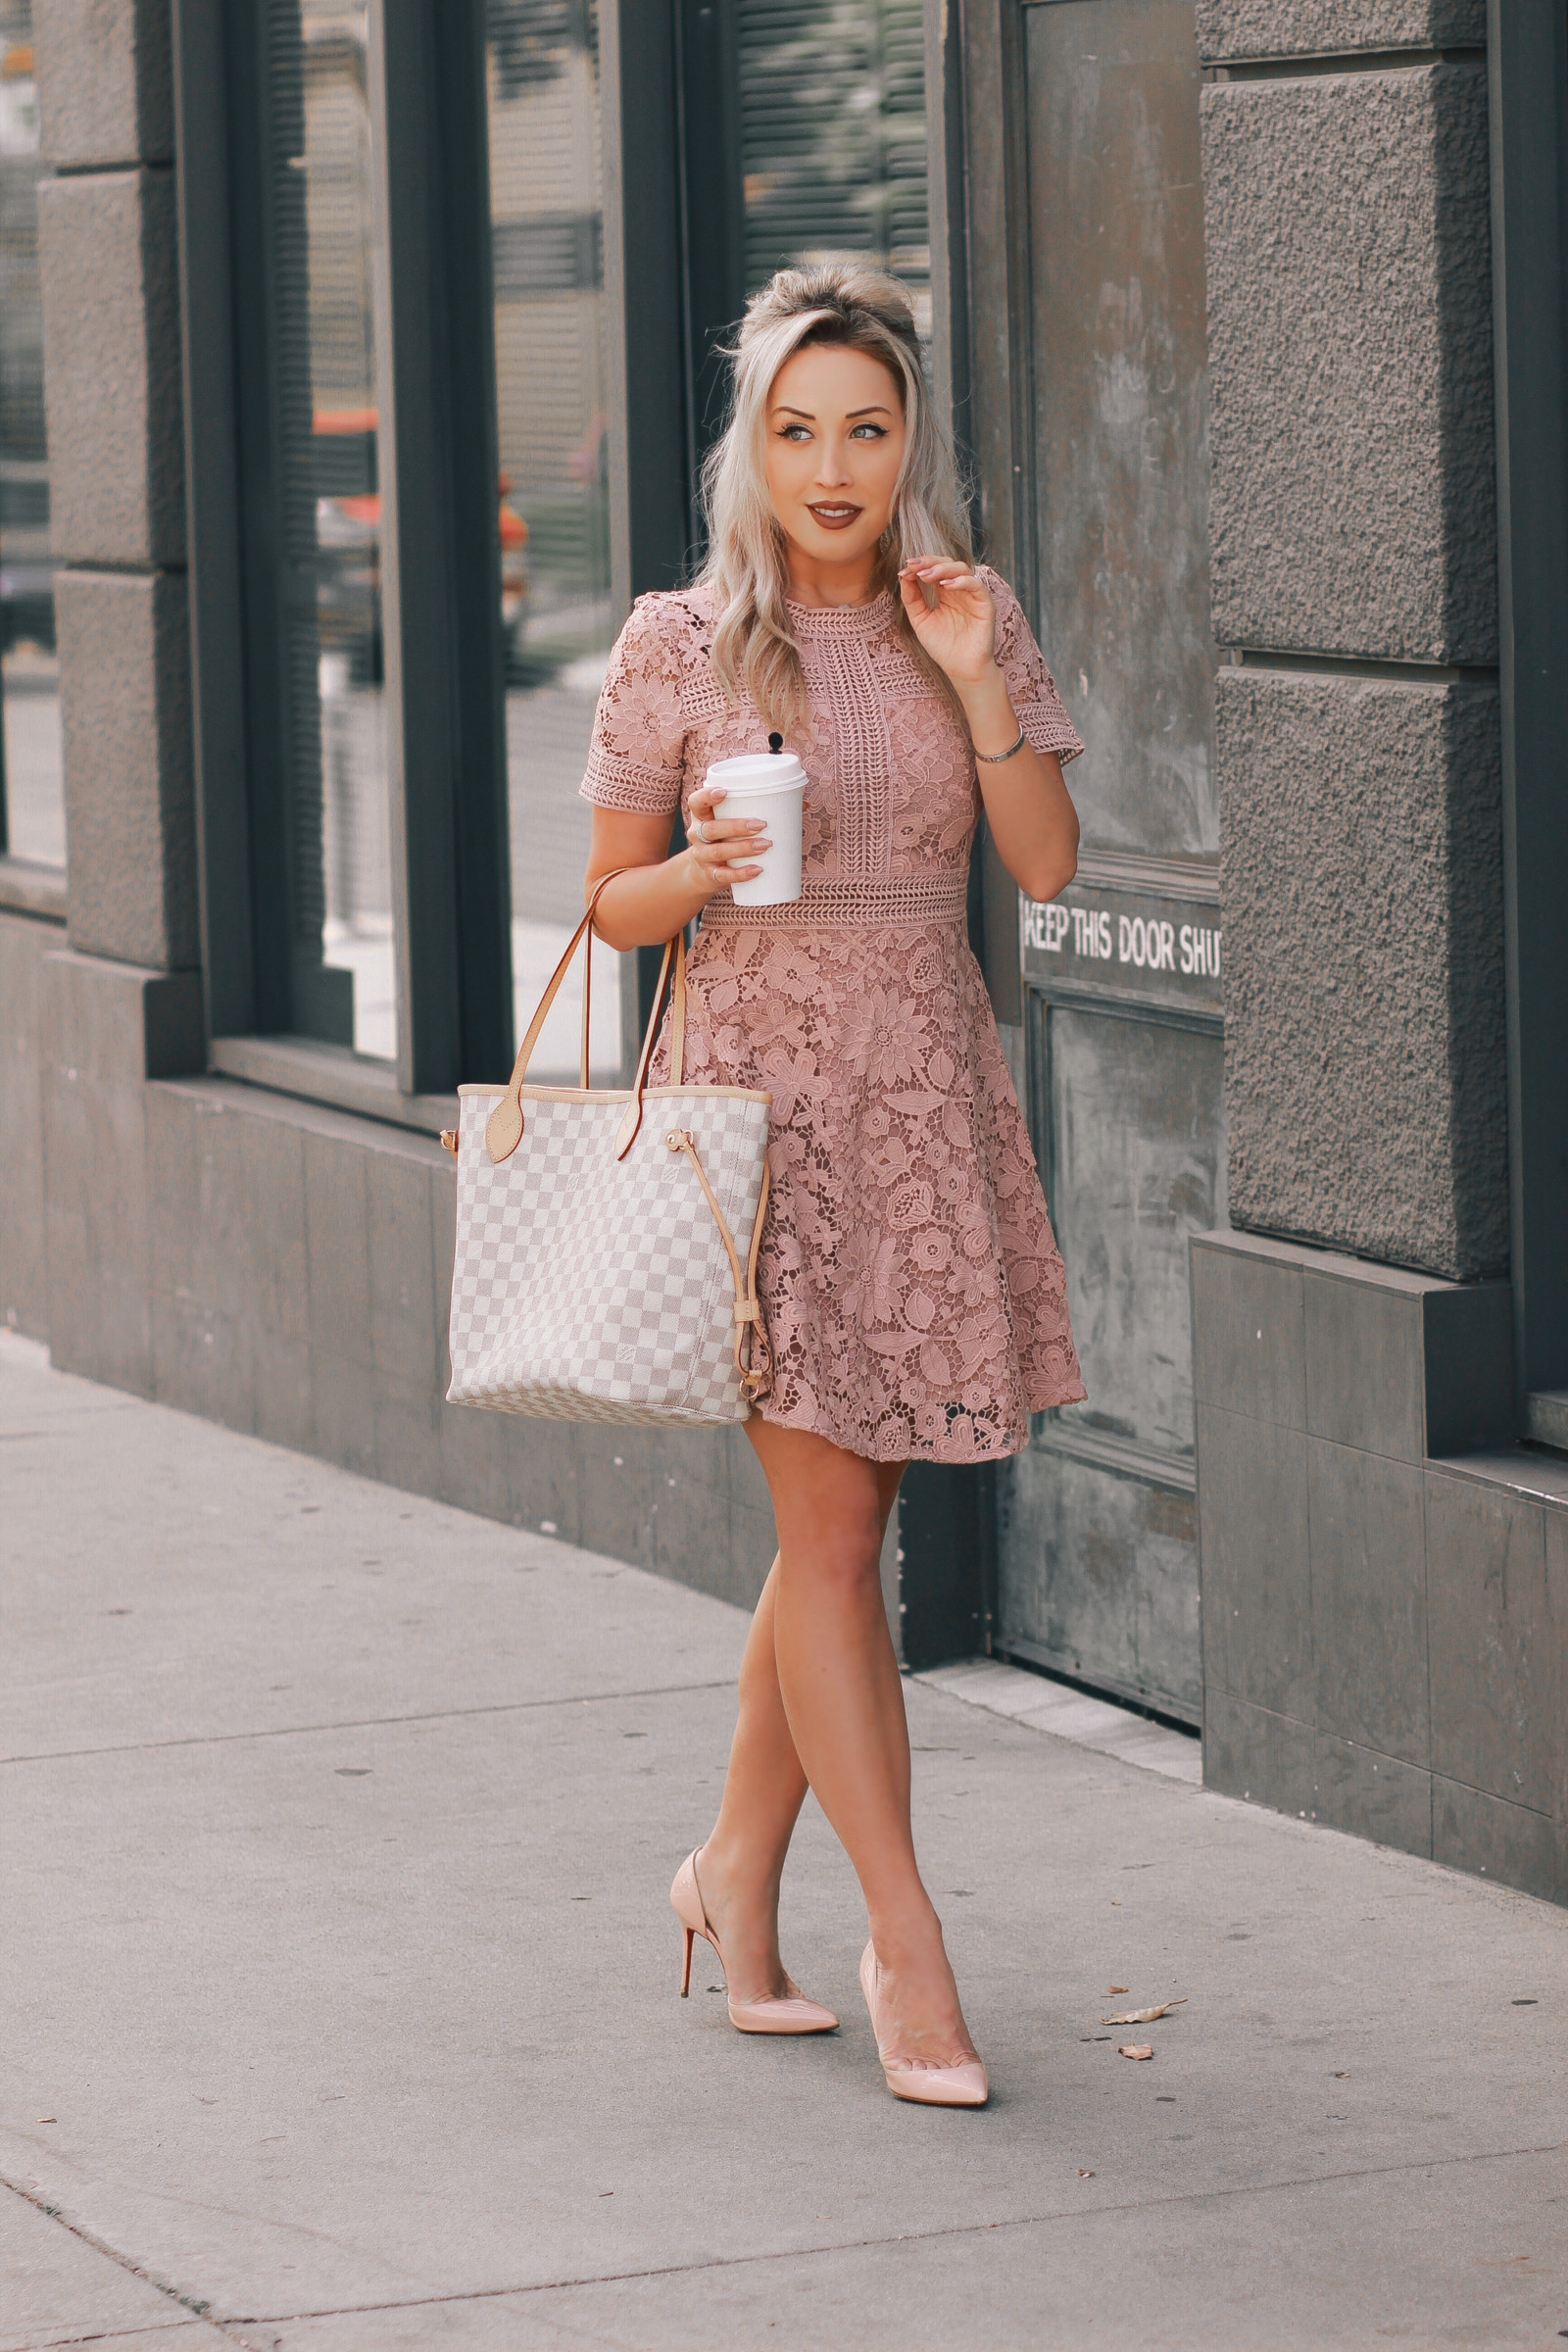 Blondie in the City | Pretty Pink Spring Dress | Louis Vuitton Neverfull | Pink Louboutin's